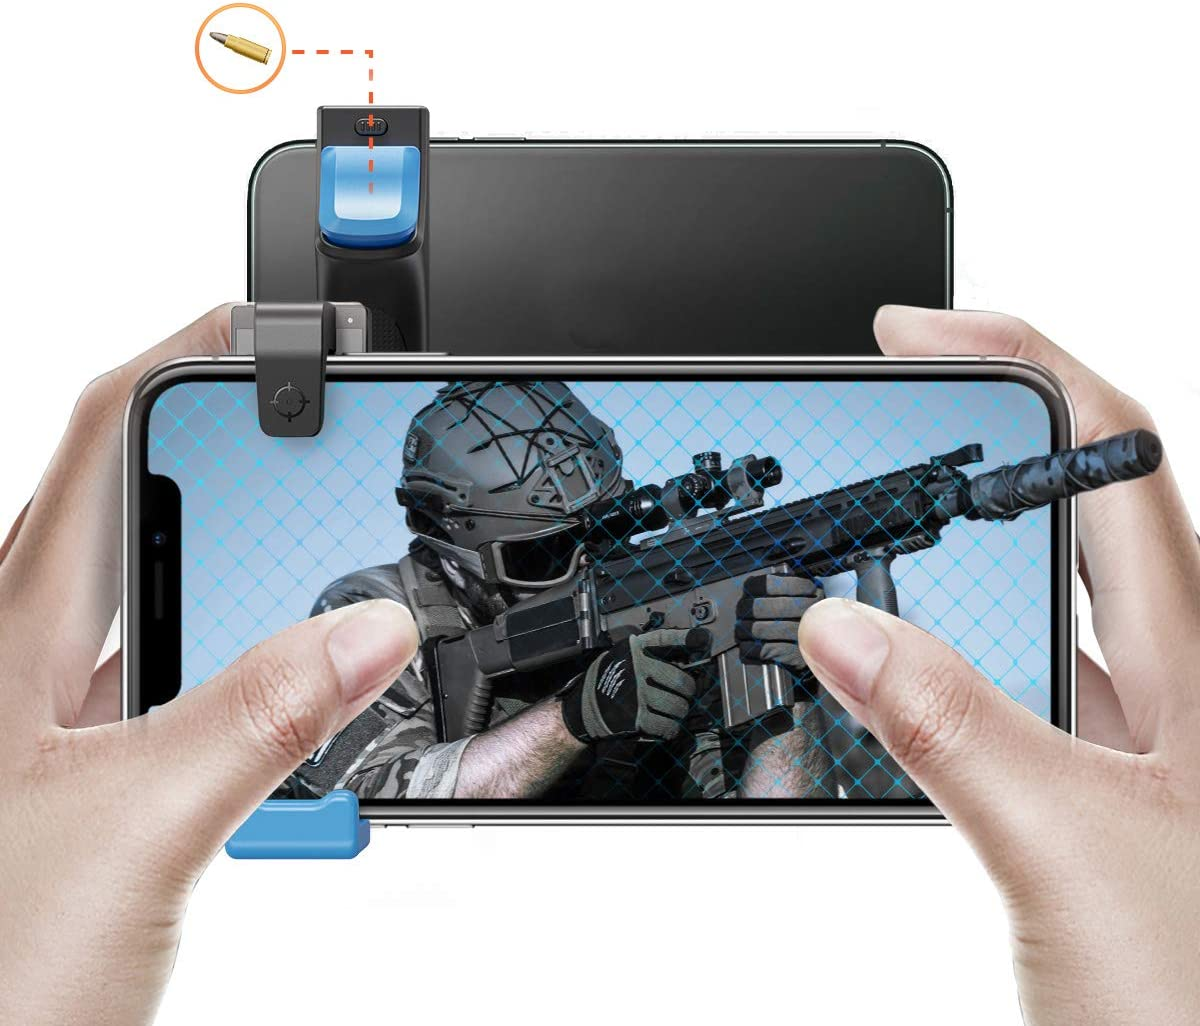 IFYOO MGT108 Mobile Game Controller Gaming Trigger Button Compatible with PUBG Mobile/Fortnitee Mobile/Call of Duty Mobile, Compatible with Android Phone & iPhone - BlueX1pcs